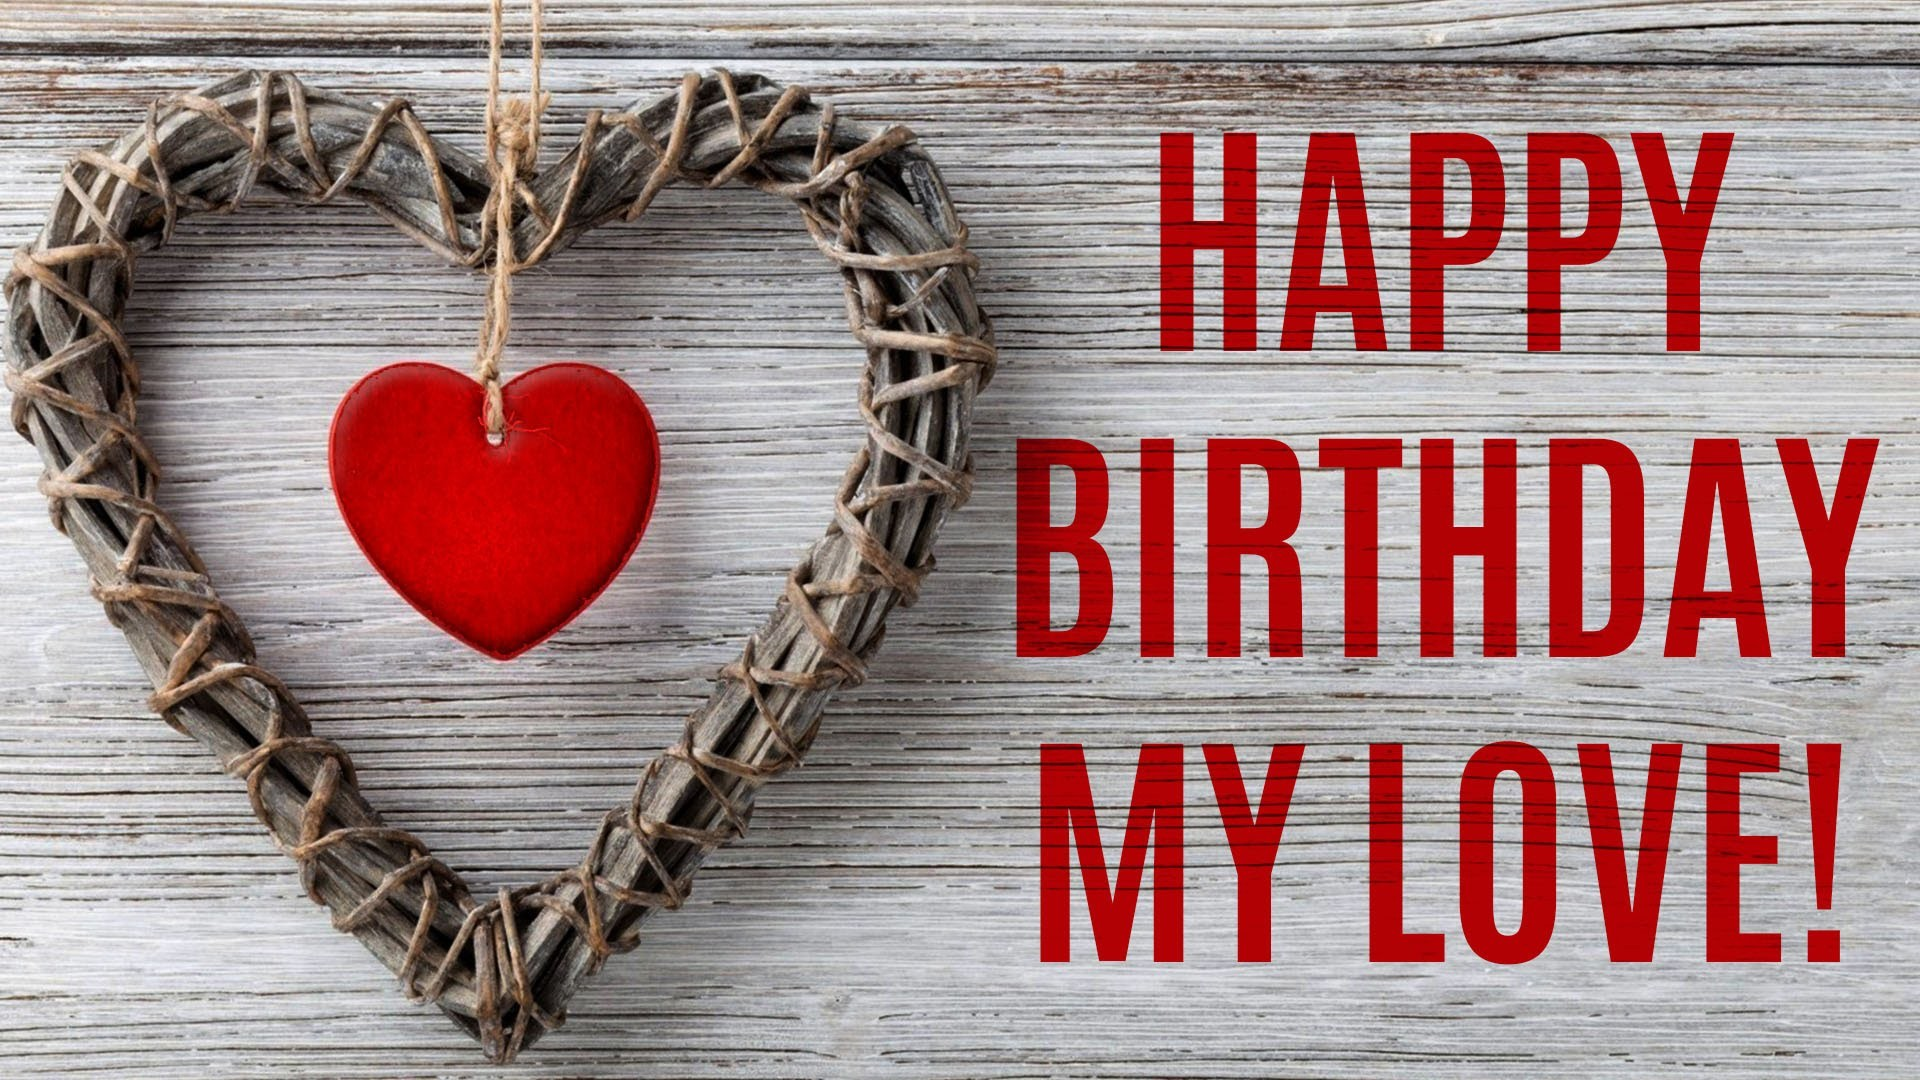 My Love Birthday Wallpaper : Happy Birthday Love Wallpaper (53+ images)